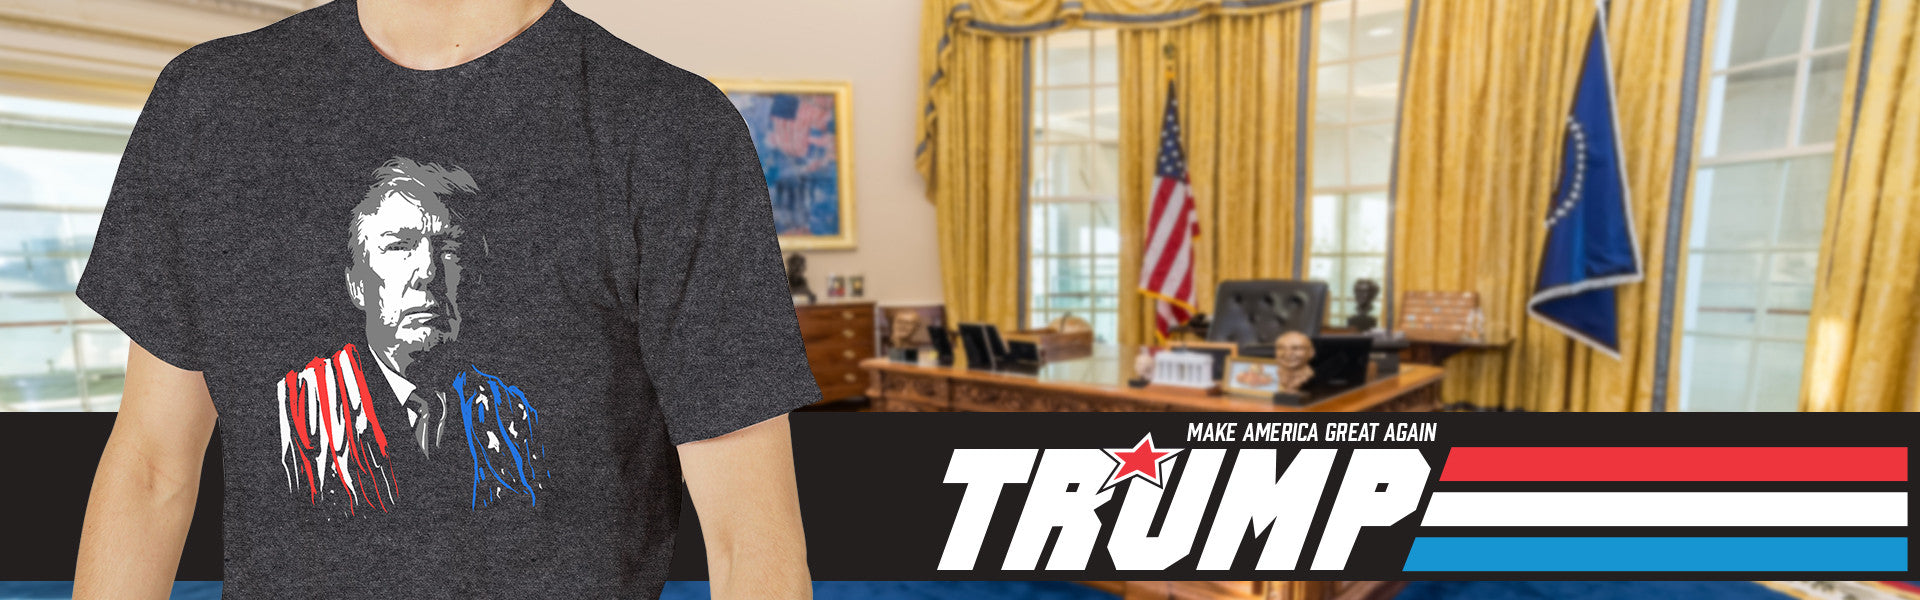 Donald Trump Shirts